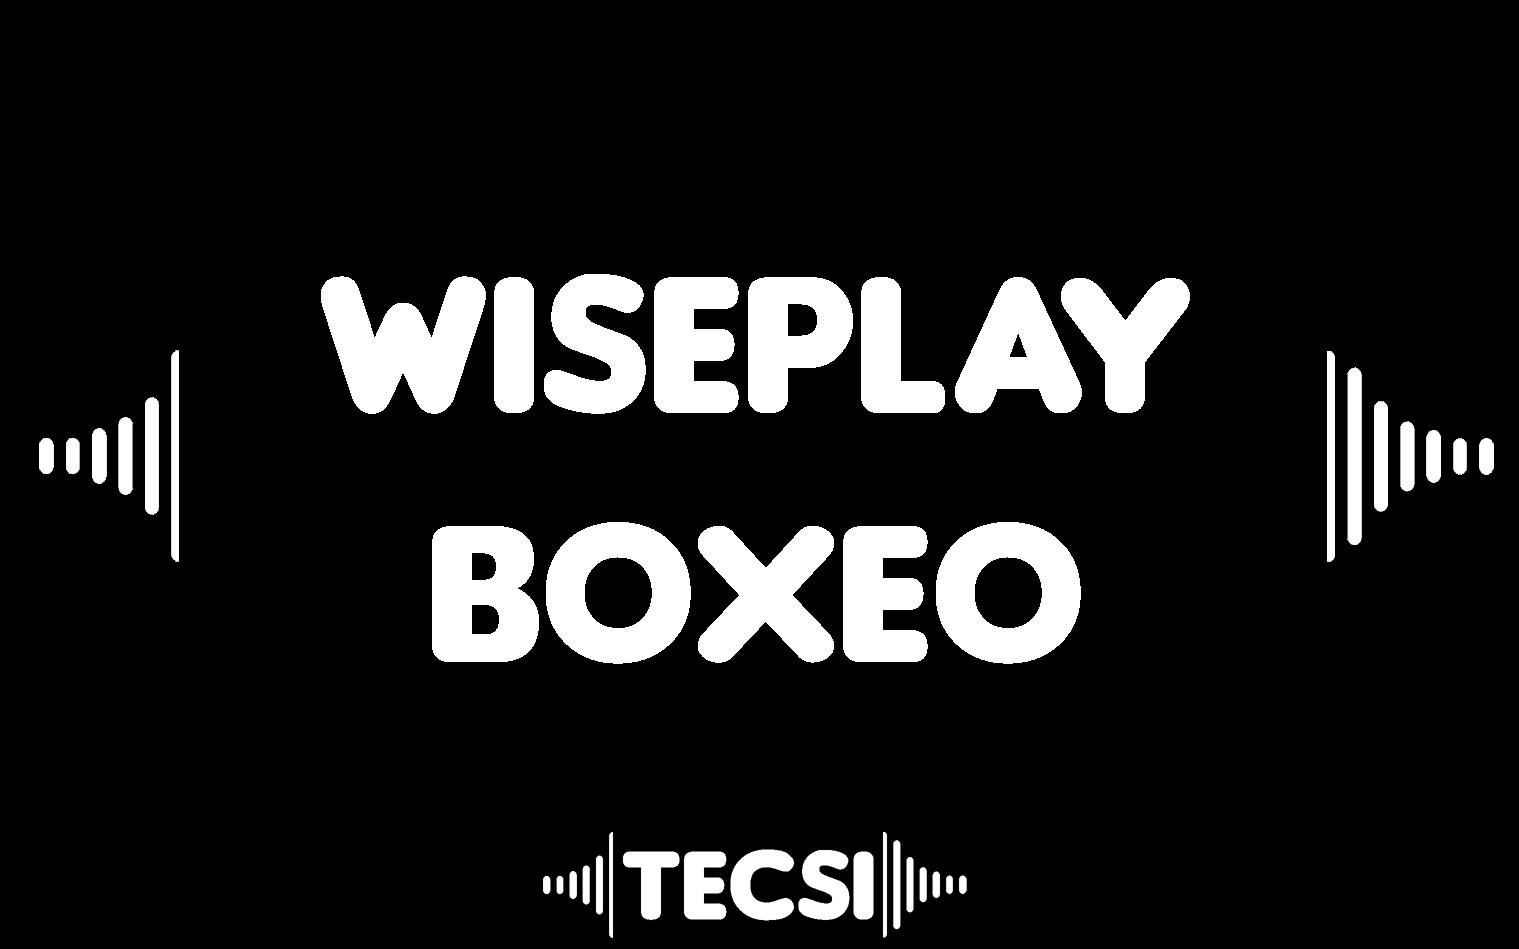 WISEPLAY BOXEO